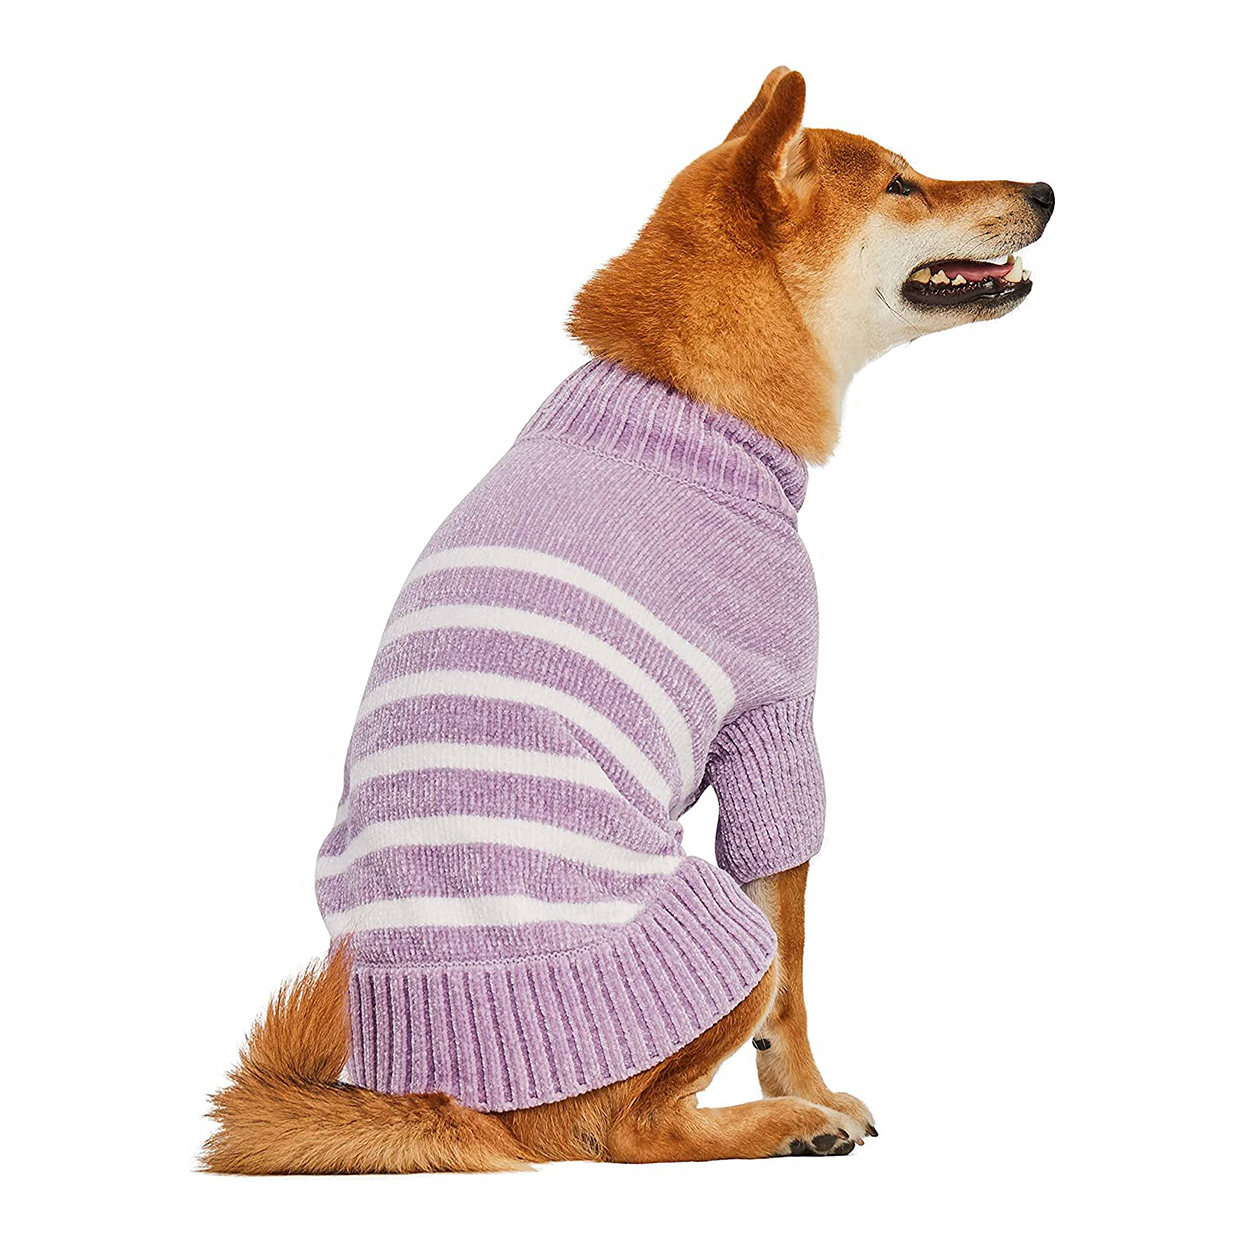 Dog wearing a Blueberry Pet Chenille Sweater on a white background